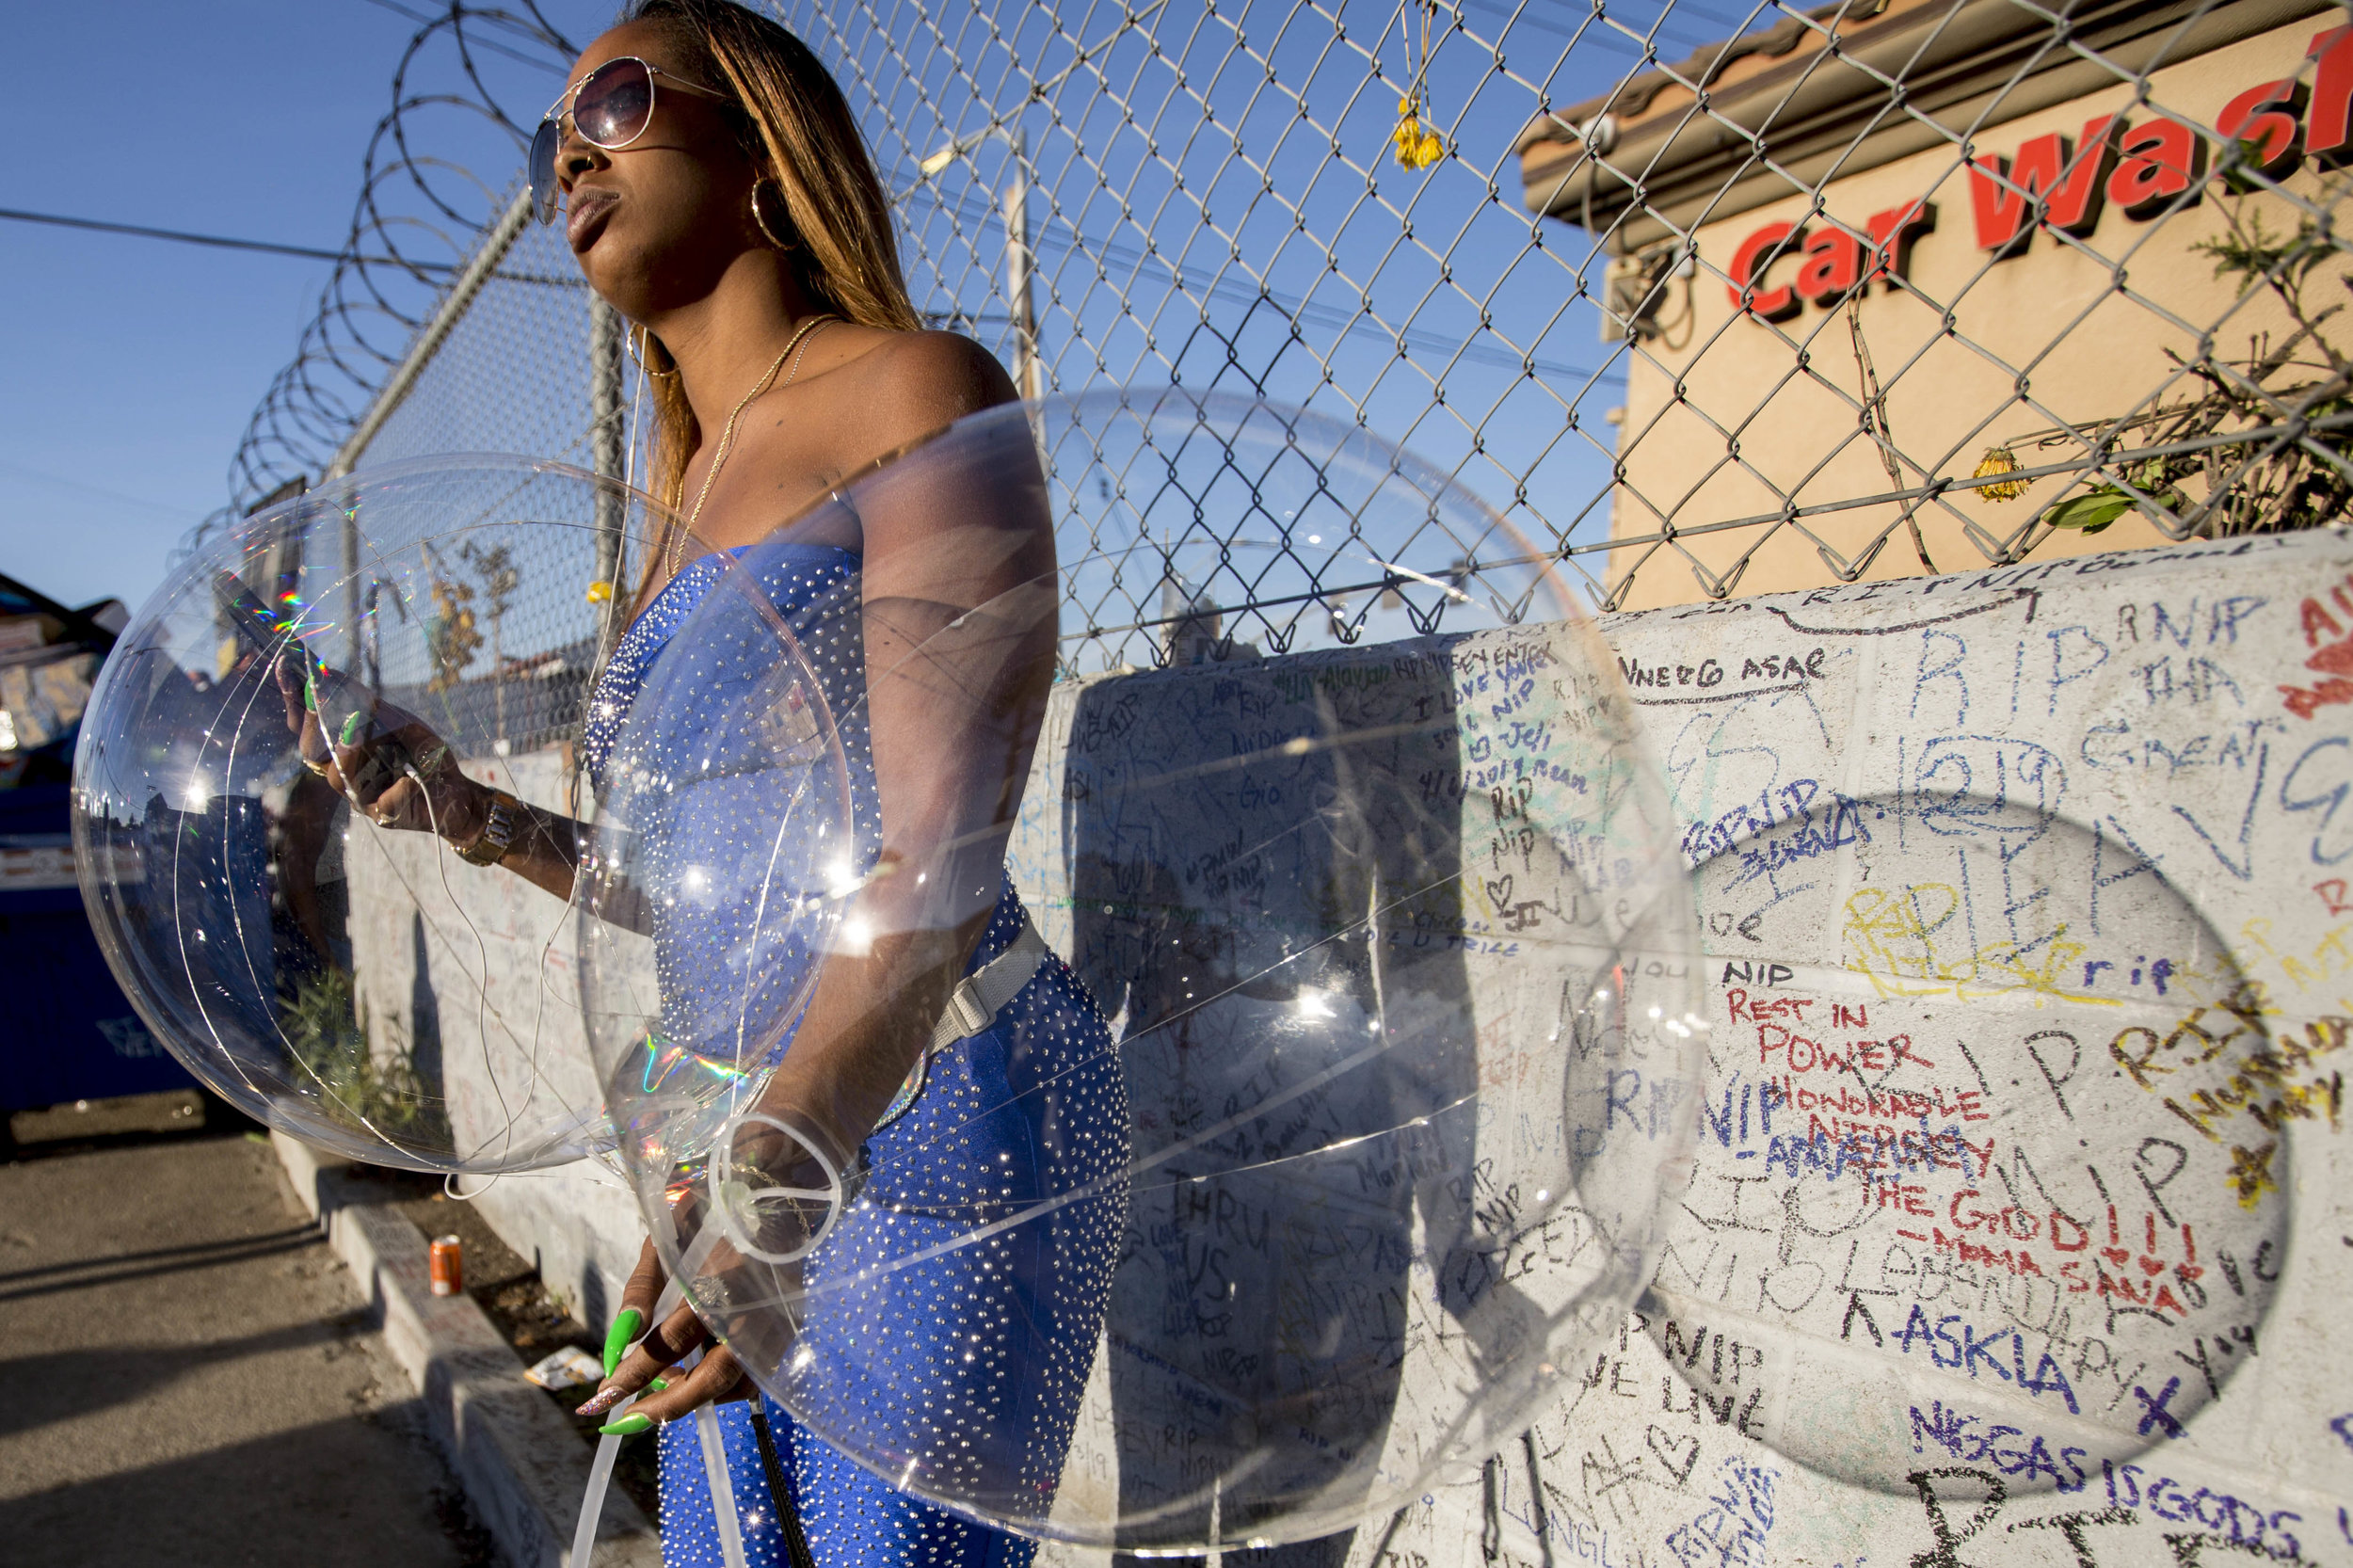 A woman waits for the sun to go down so that she can light up her clear balloons and place them at the makeshift memorial in commemoration of Nipsey Hussle at The Marathon Clothing store on Slauson Avenue in Los Angeles, California on Wednesday, April 6, 2019. The 33-year-old rapper was murdered on March 31 in front of The Marathon Clothing store which he owned. (Jose Lopez)